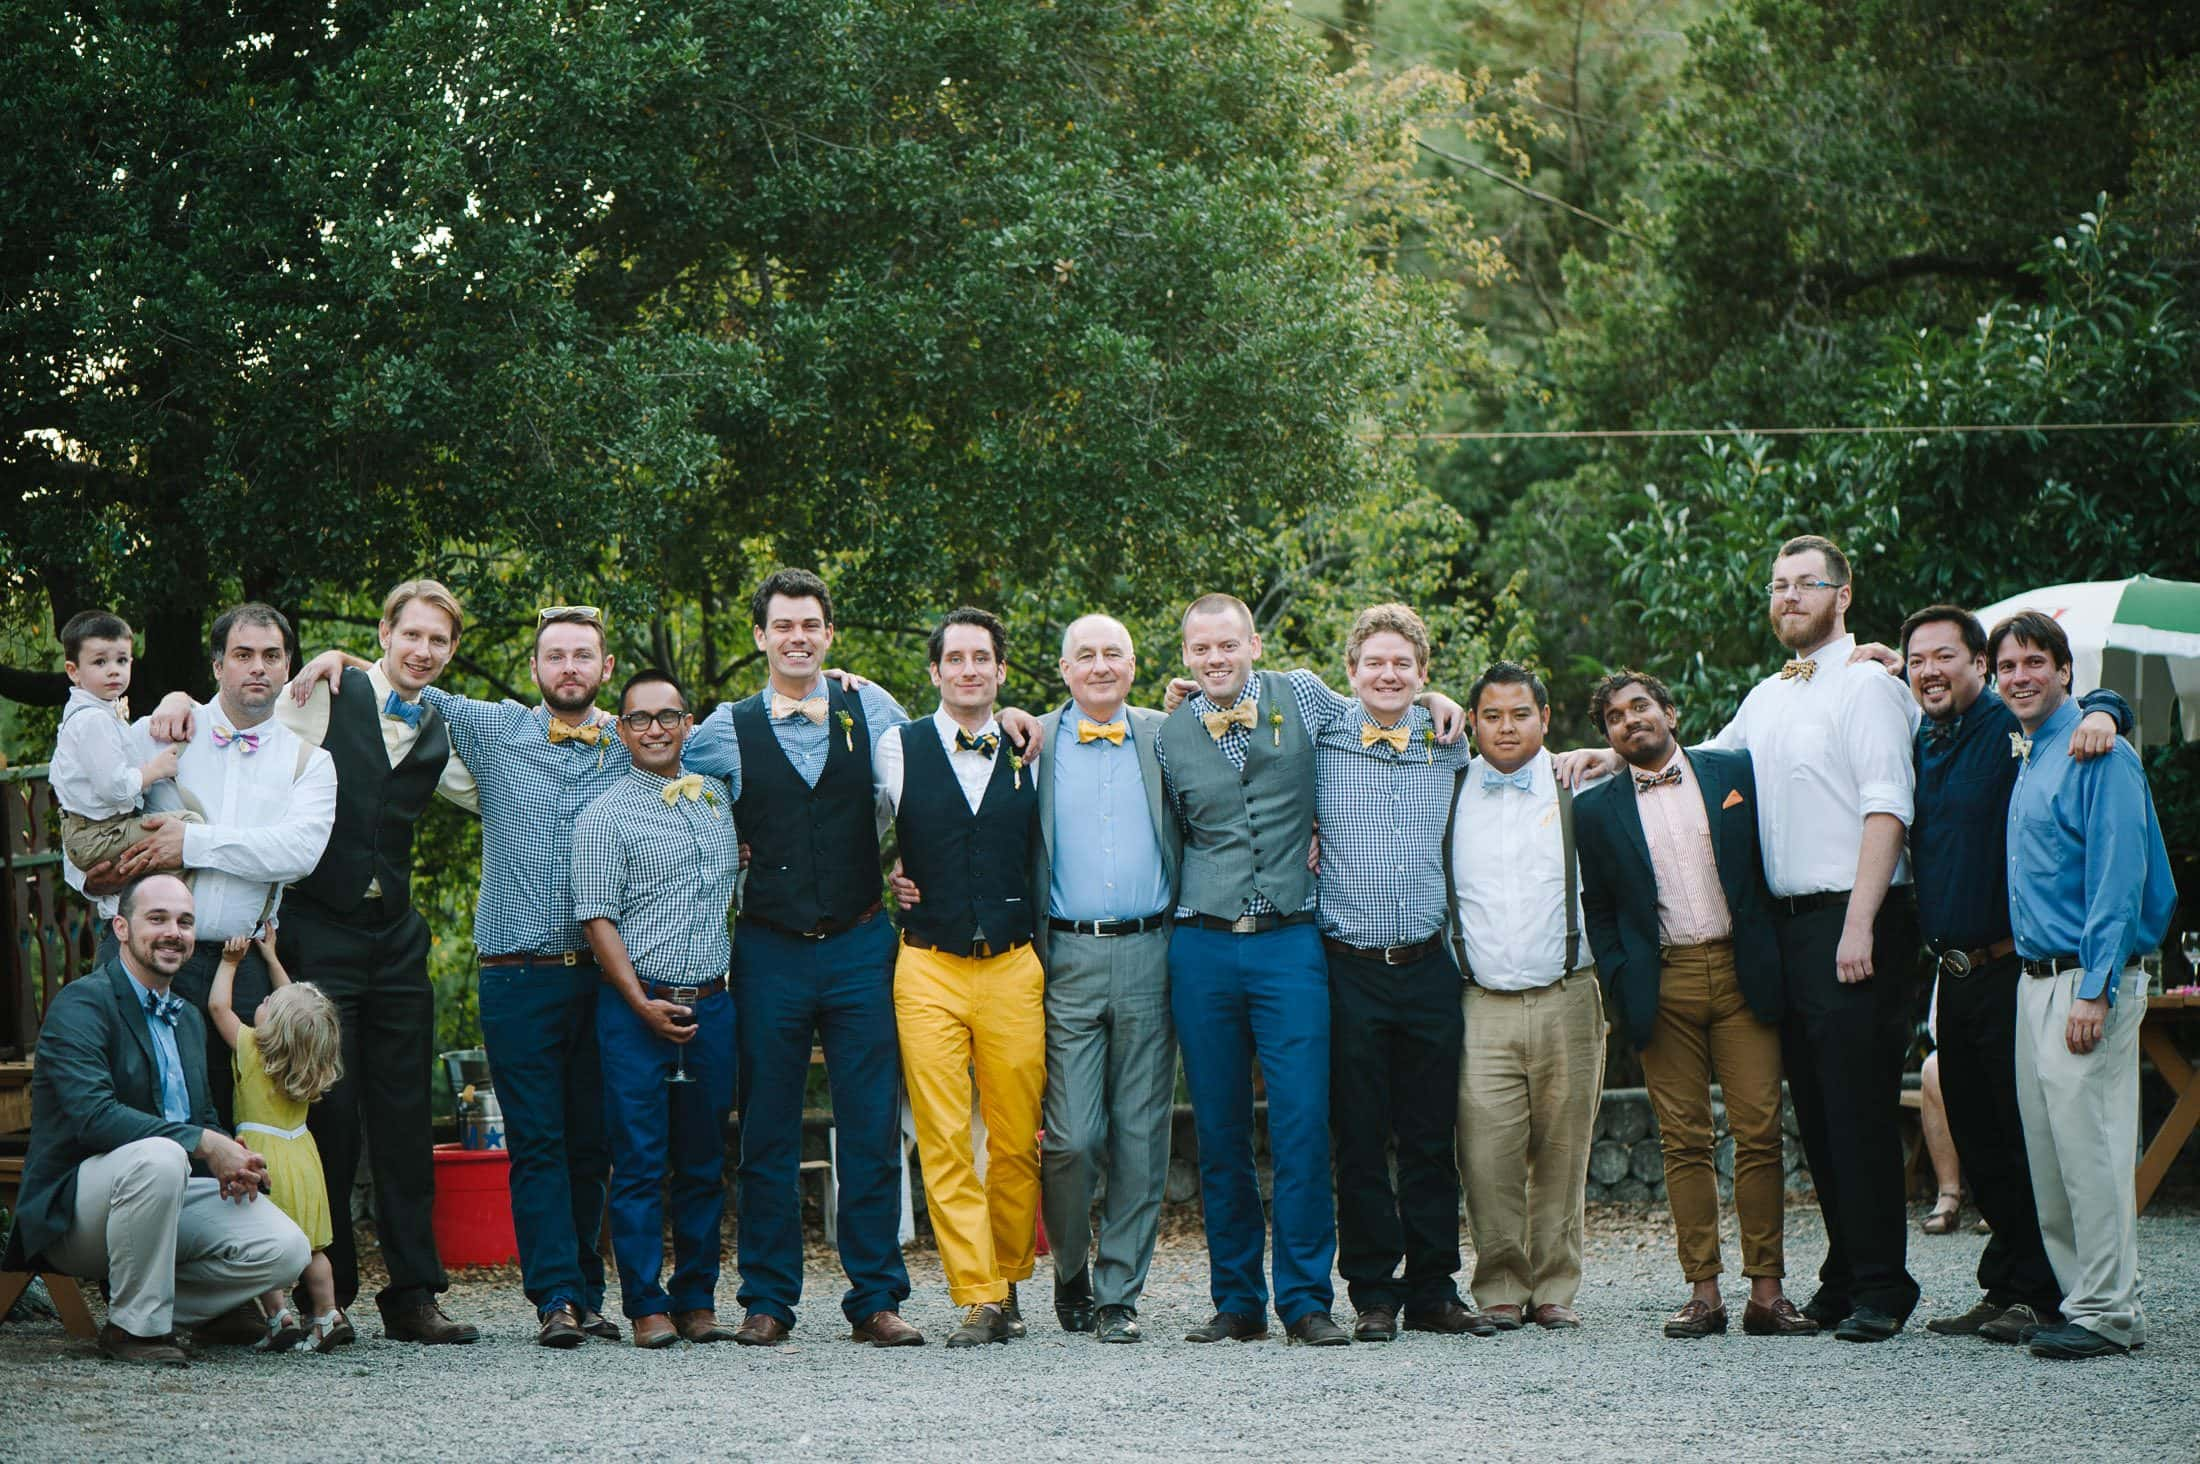 fun groom's men at wedding at oakland nature friends